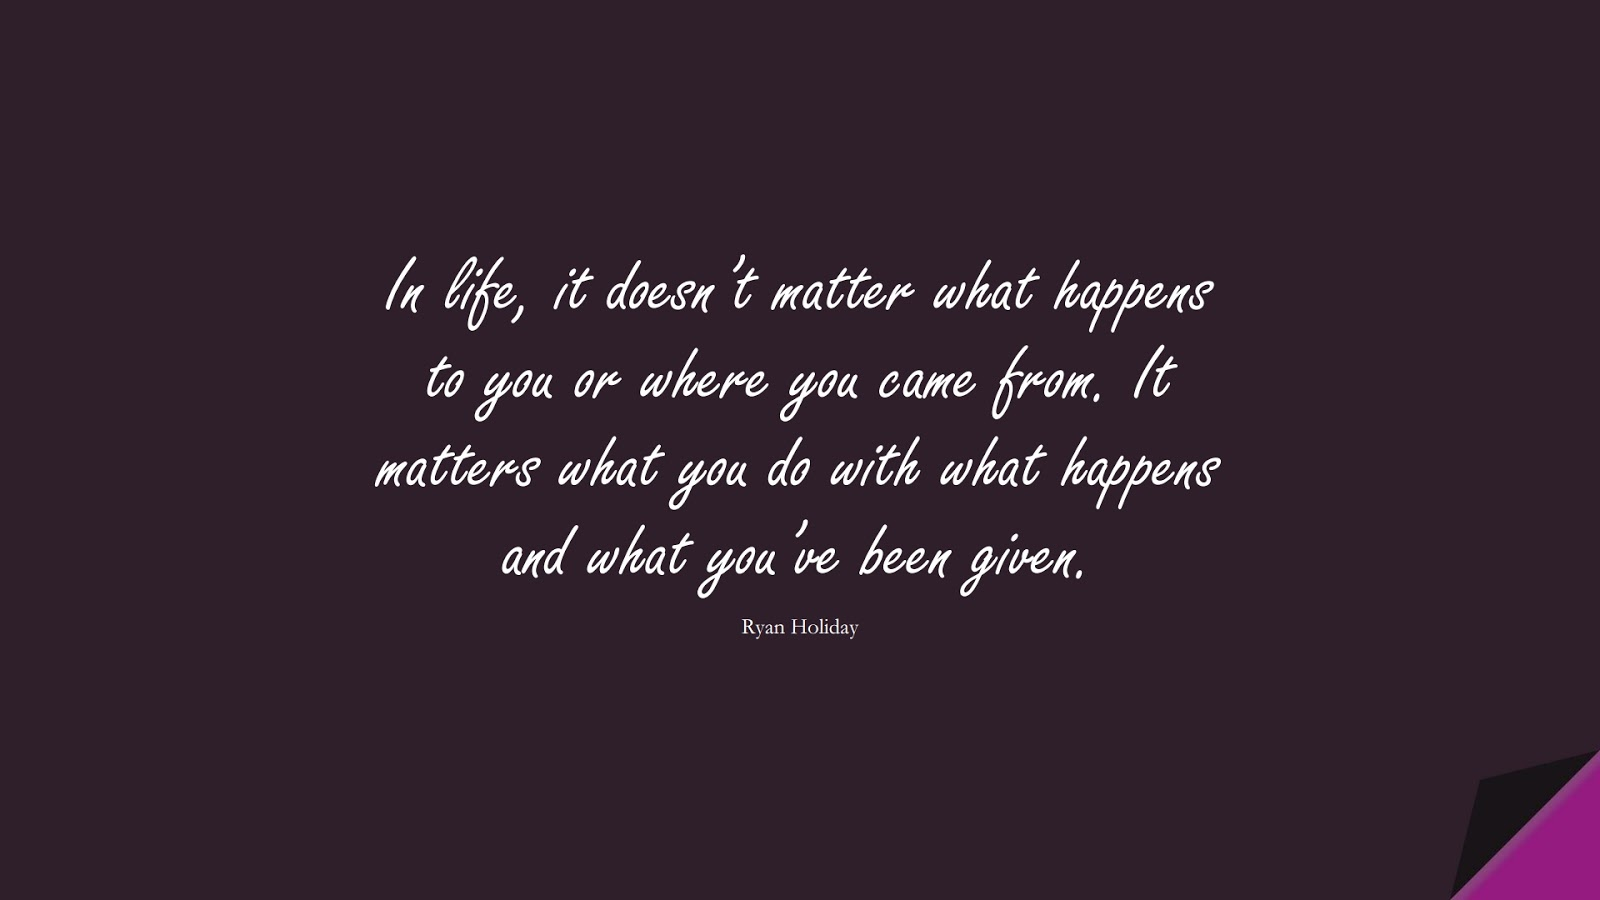 In life, it doesn't matter what happens to you or where you came from. It matters what you do with what happens and what you've been given. (Ryan Holiday);  #StoicQuotes